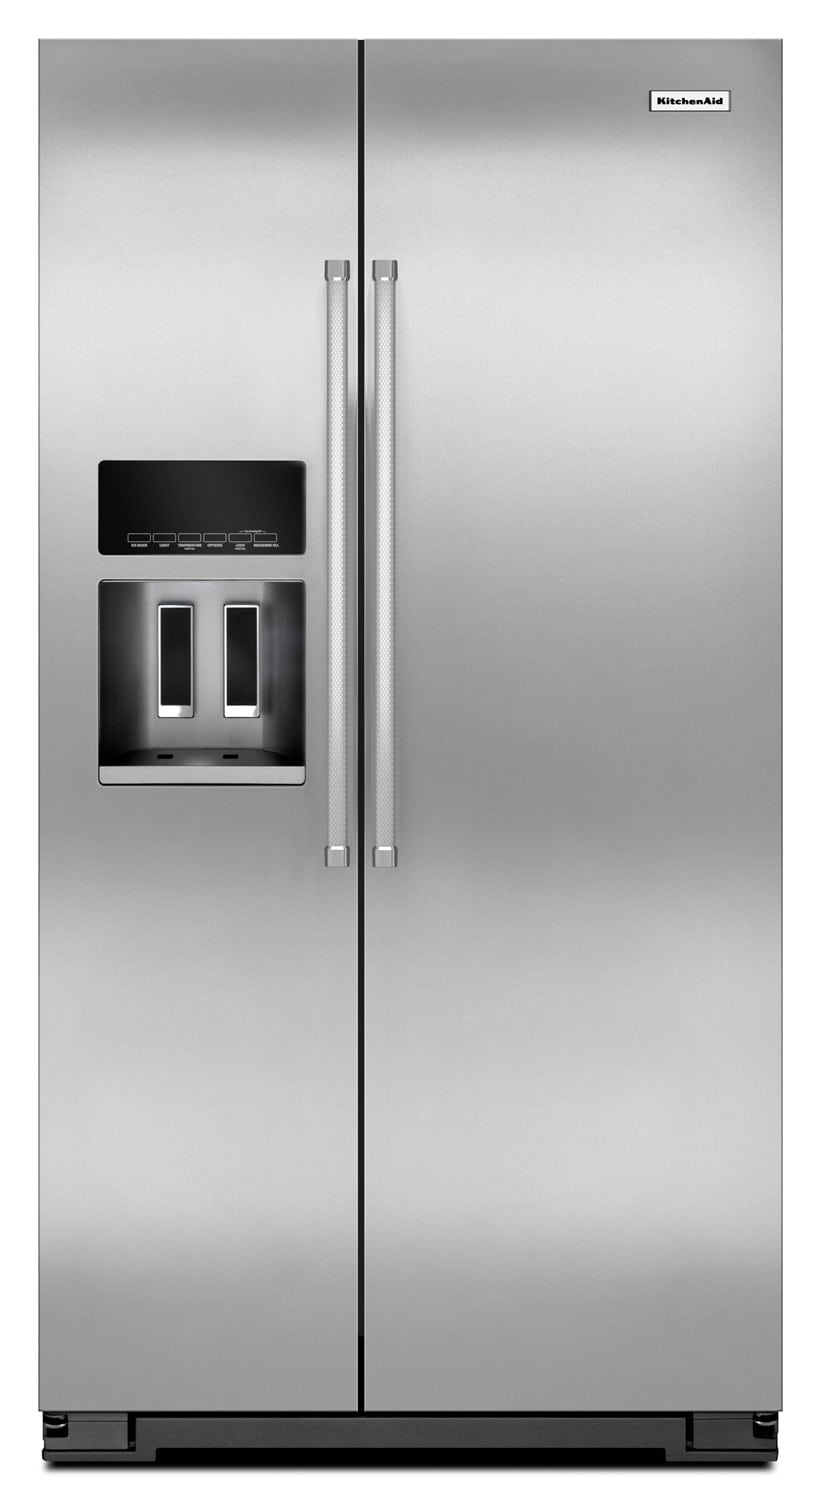 KitchenAid 19.8 Cu. Ft. Side-by-Side Refrigerator - Stainless Steel